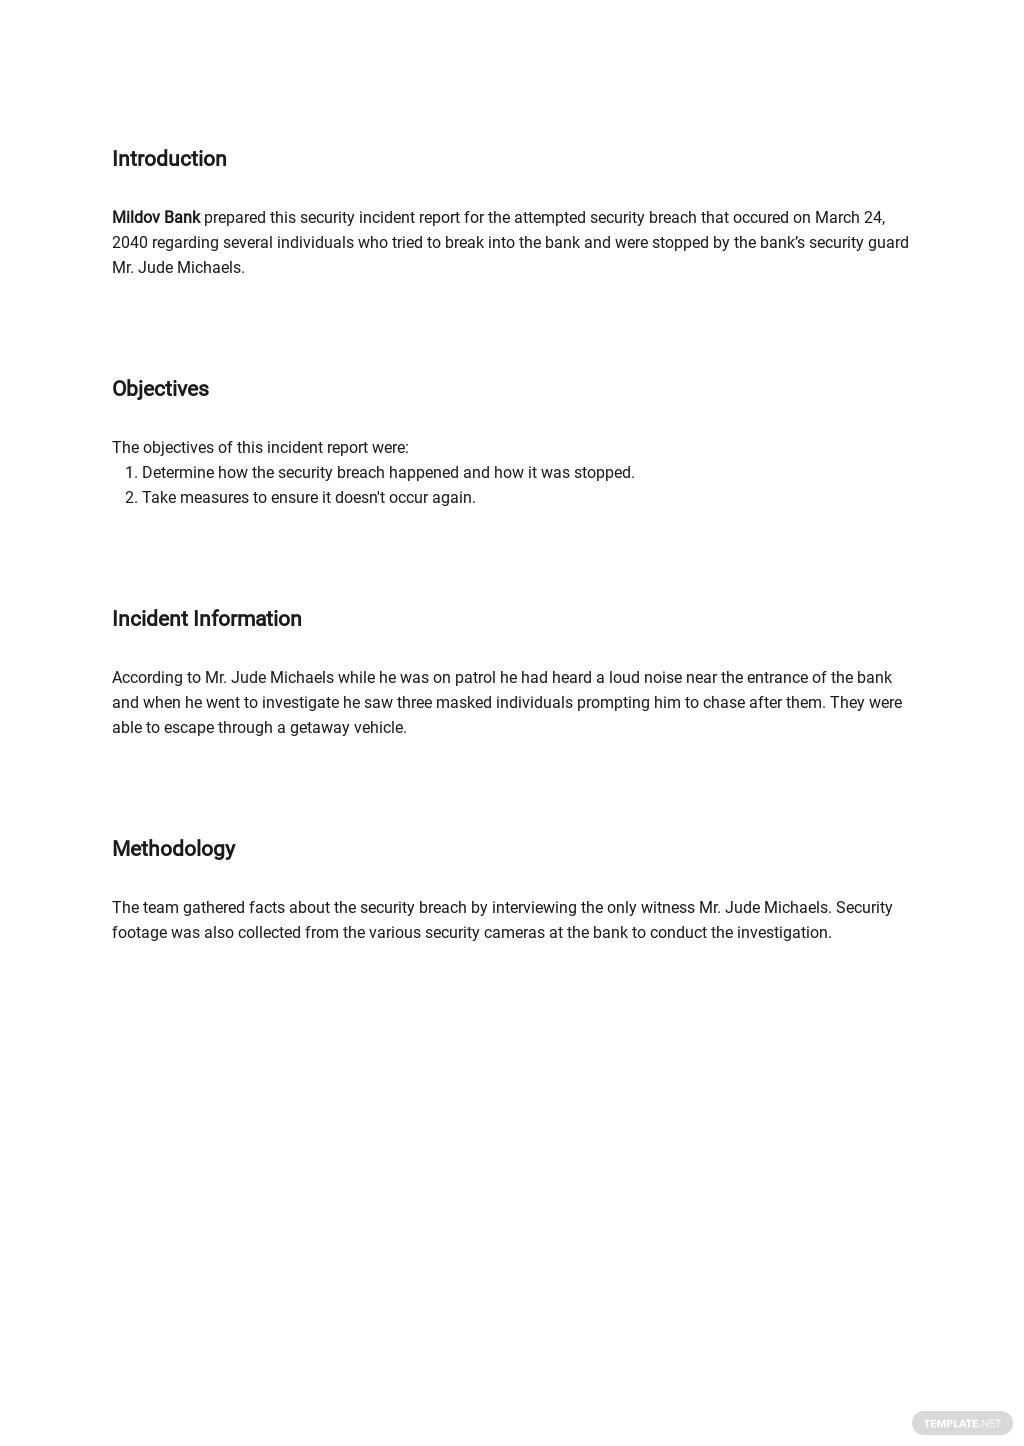 Free Security Incident Report Template 1.jpe